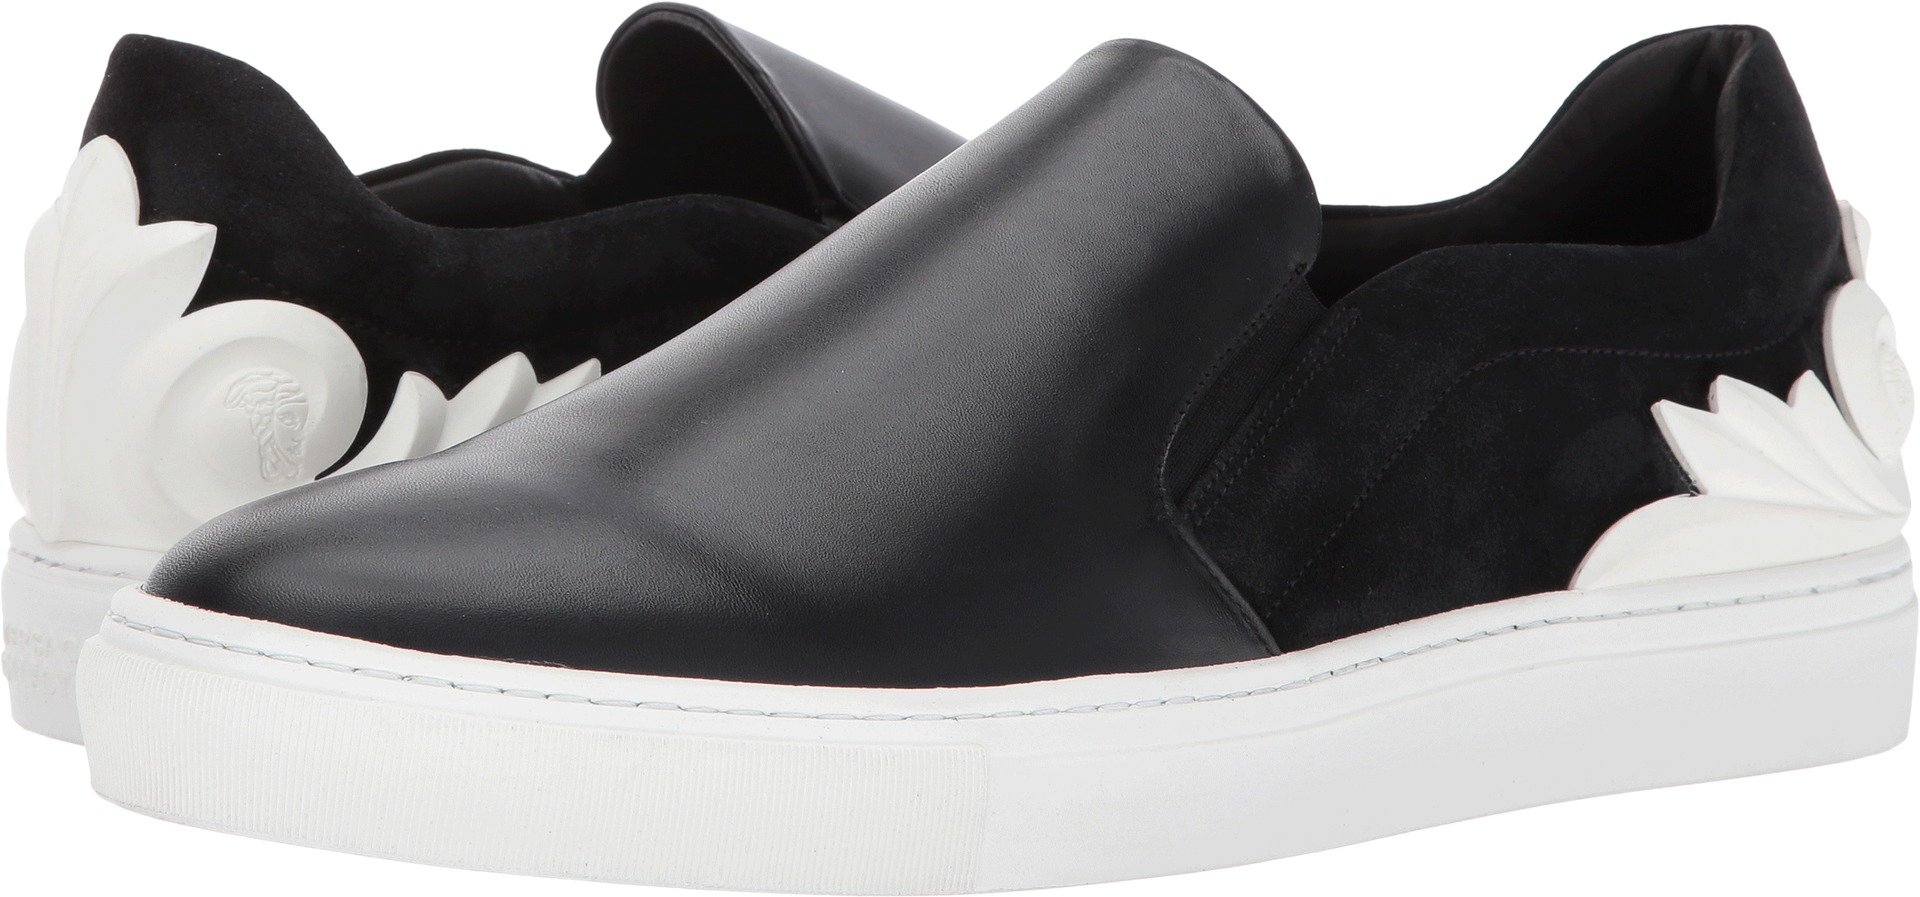 Versace Collection  Men's Baroque Detailed Slip-On Black Loafer by Versace